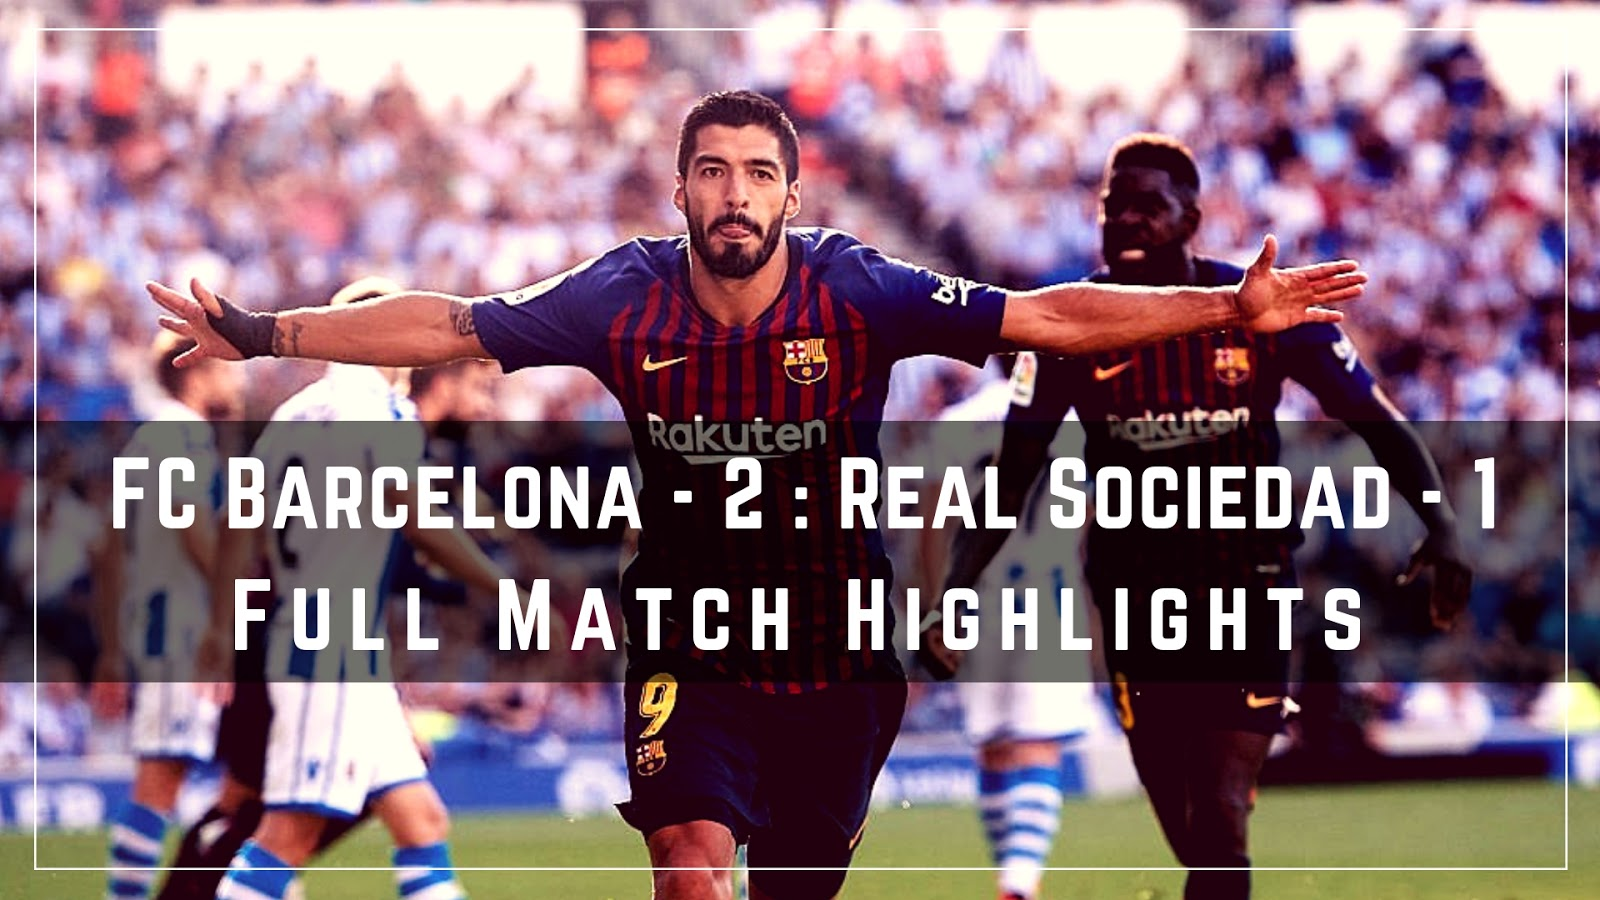 Full Match Highlights of Barca vs Real Sociedad on 15th September 2018